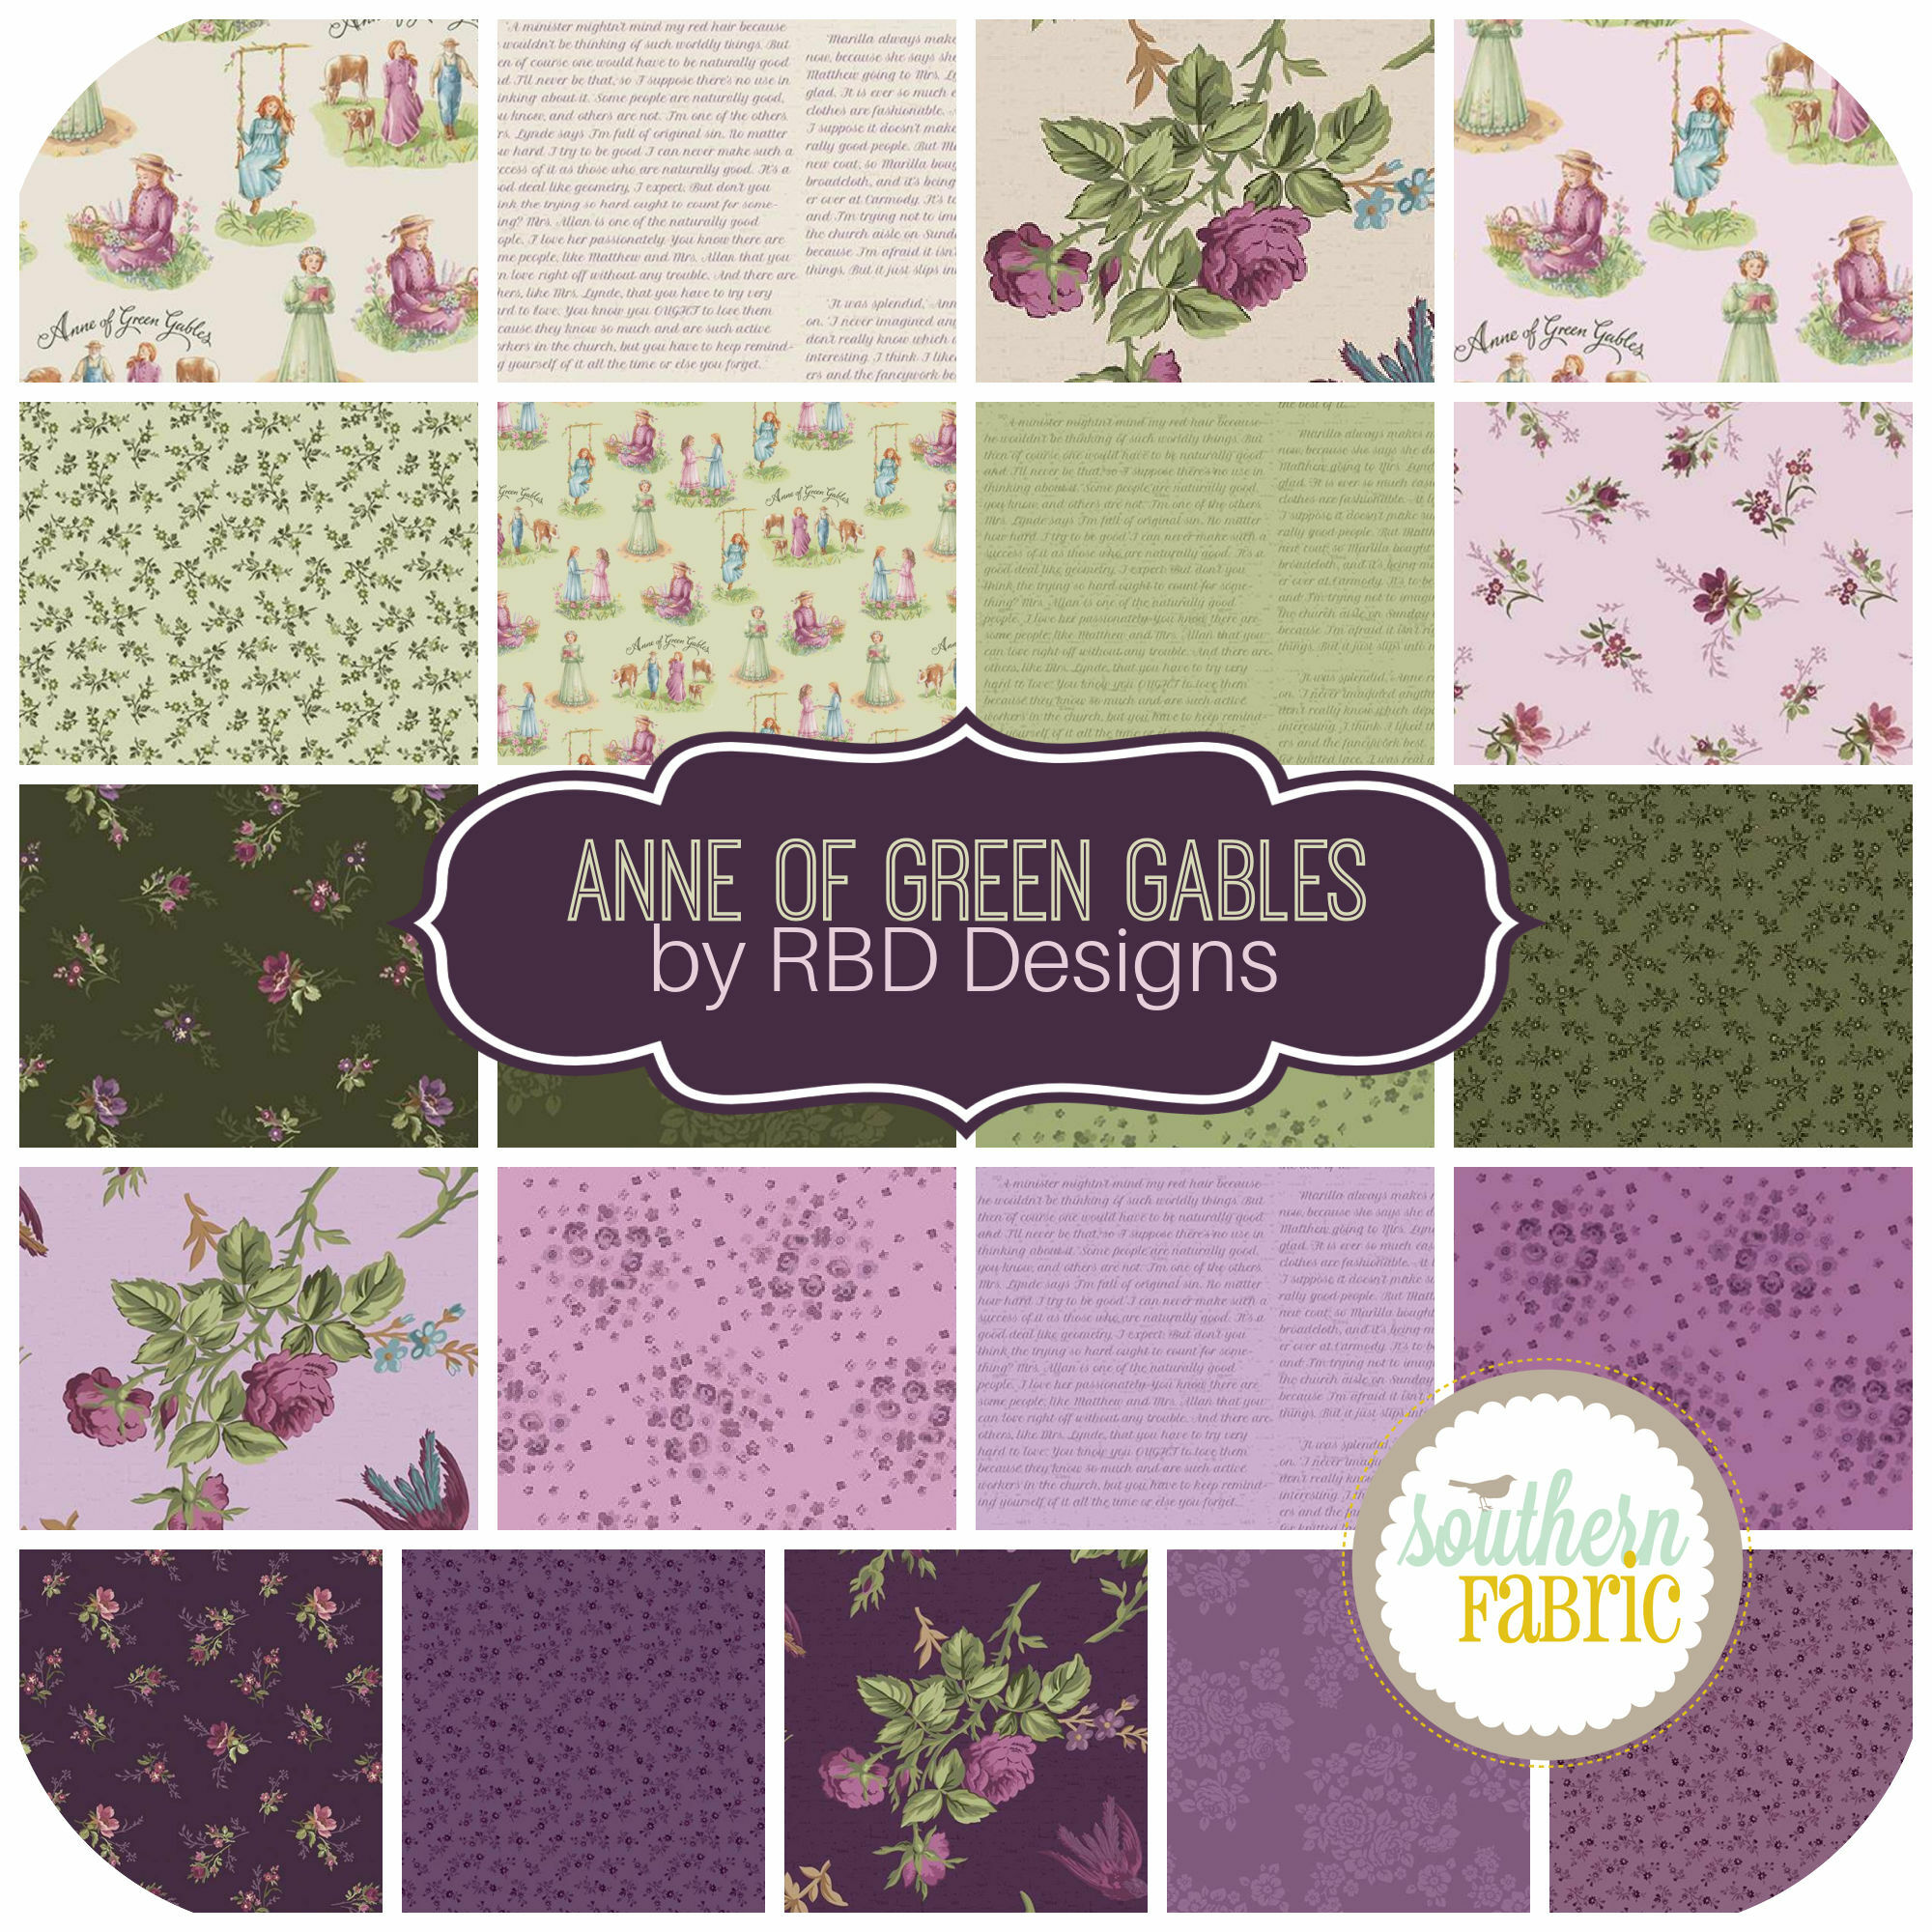 Anne of Green Gables by RBD Designers